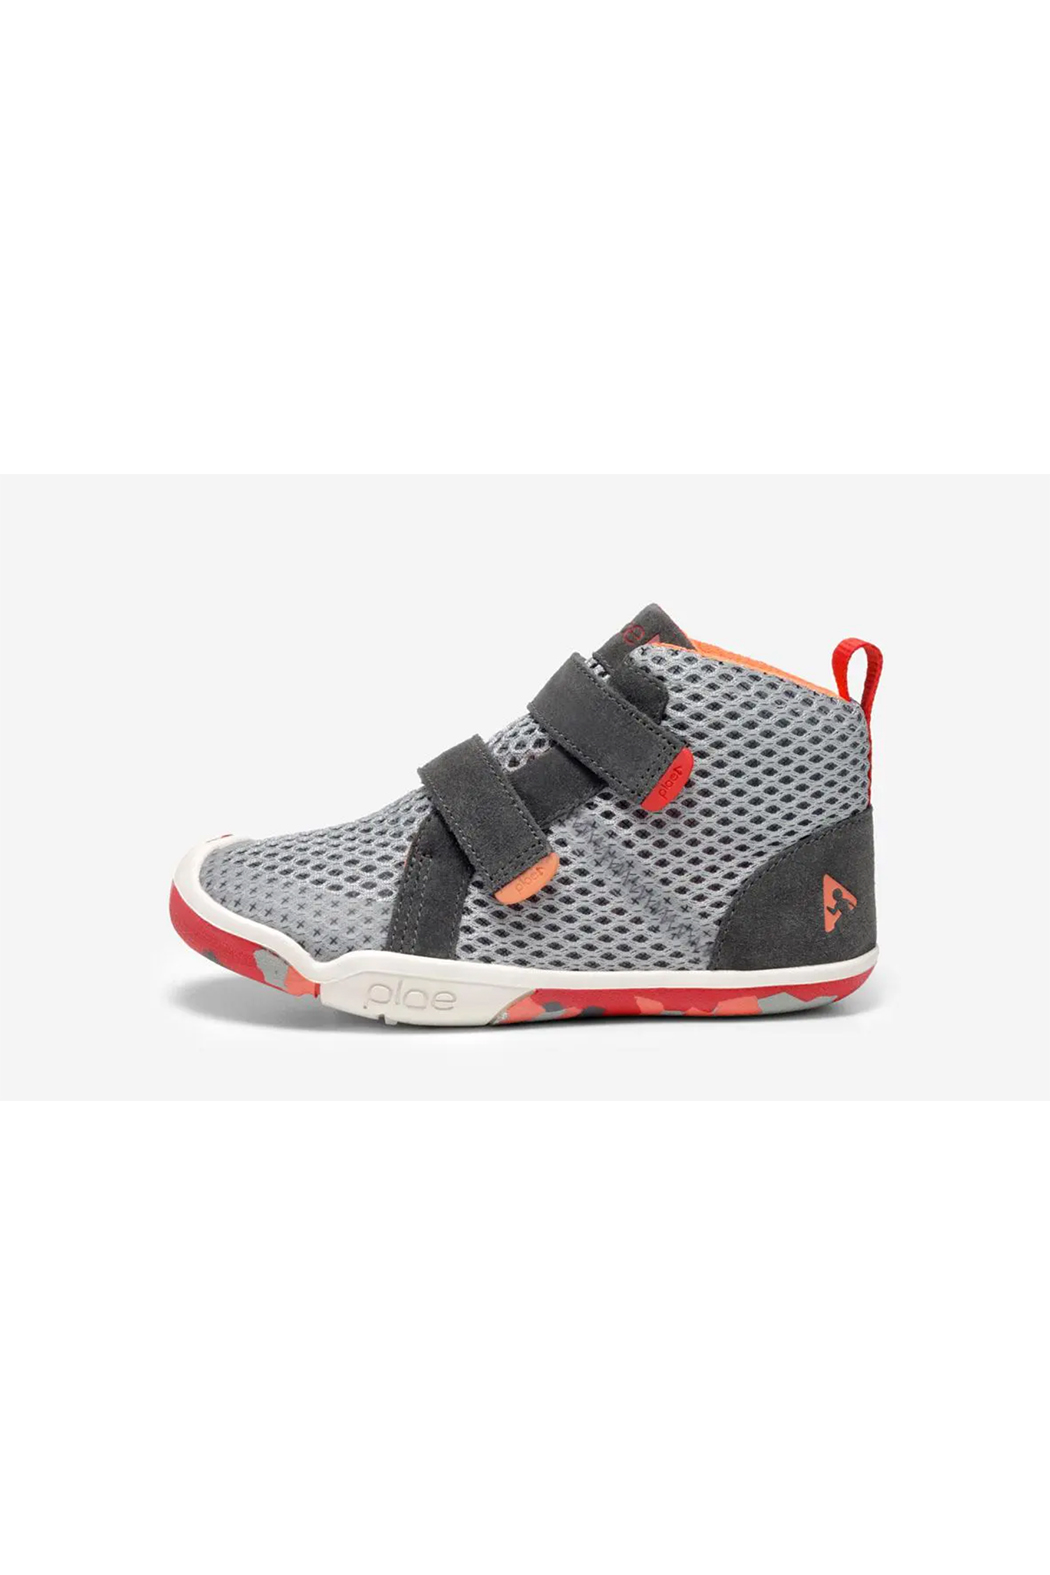 PLAE Leo Hi-Top Youth Sneaker - Main Image